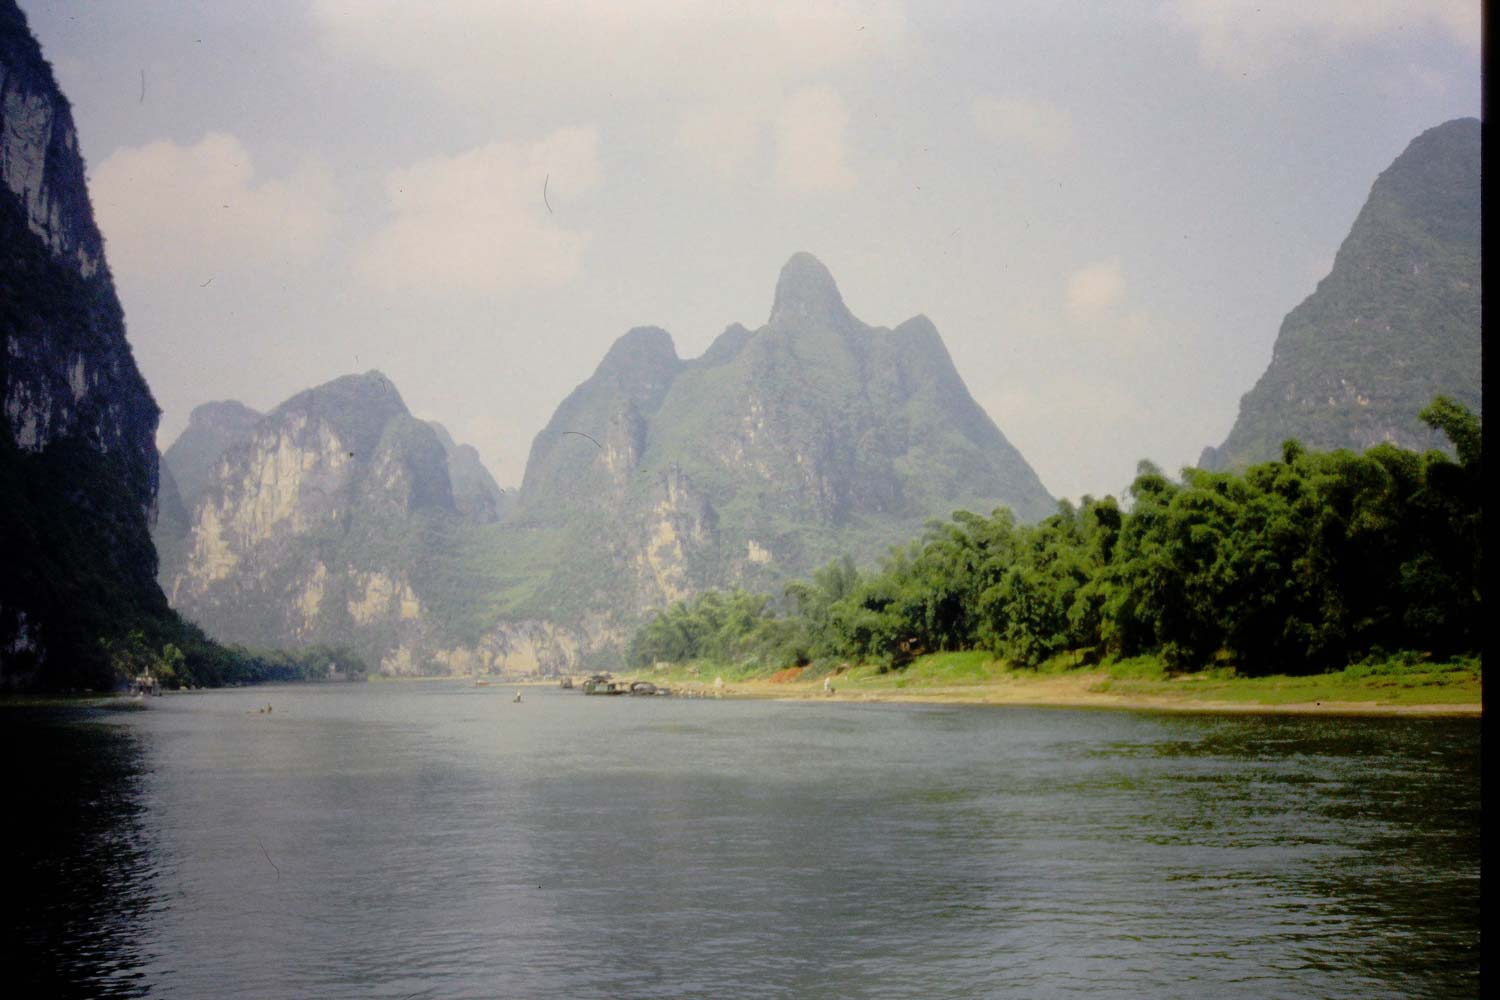 A photo from China, scanned by a Magnasonic scanner